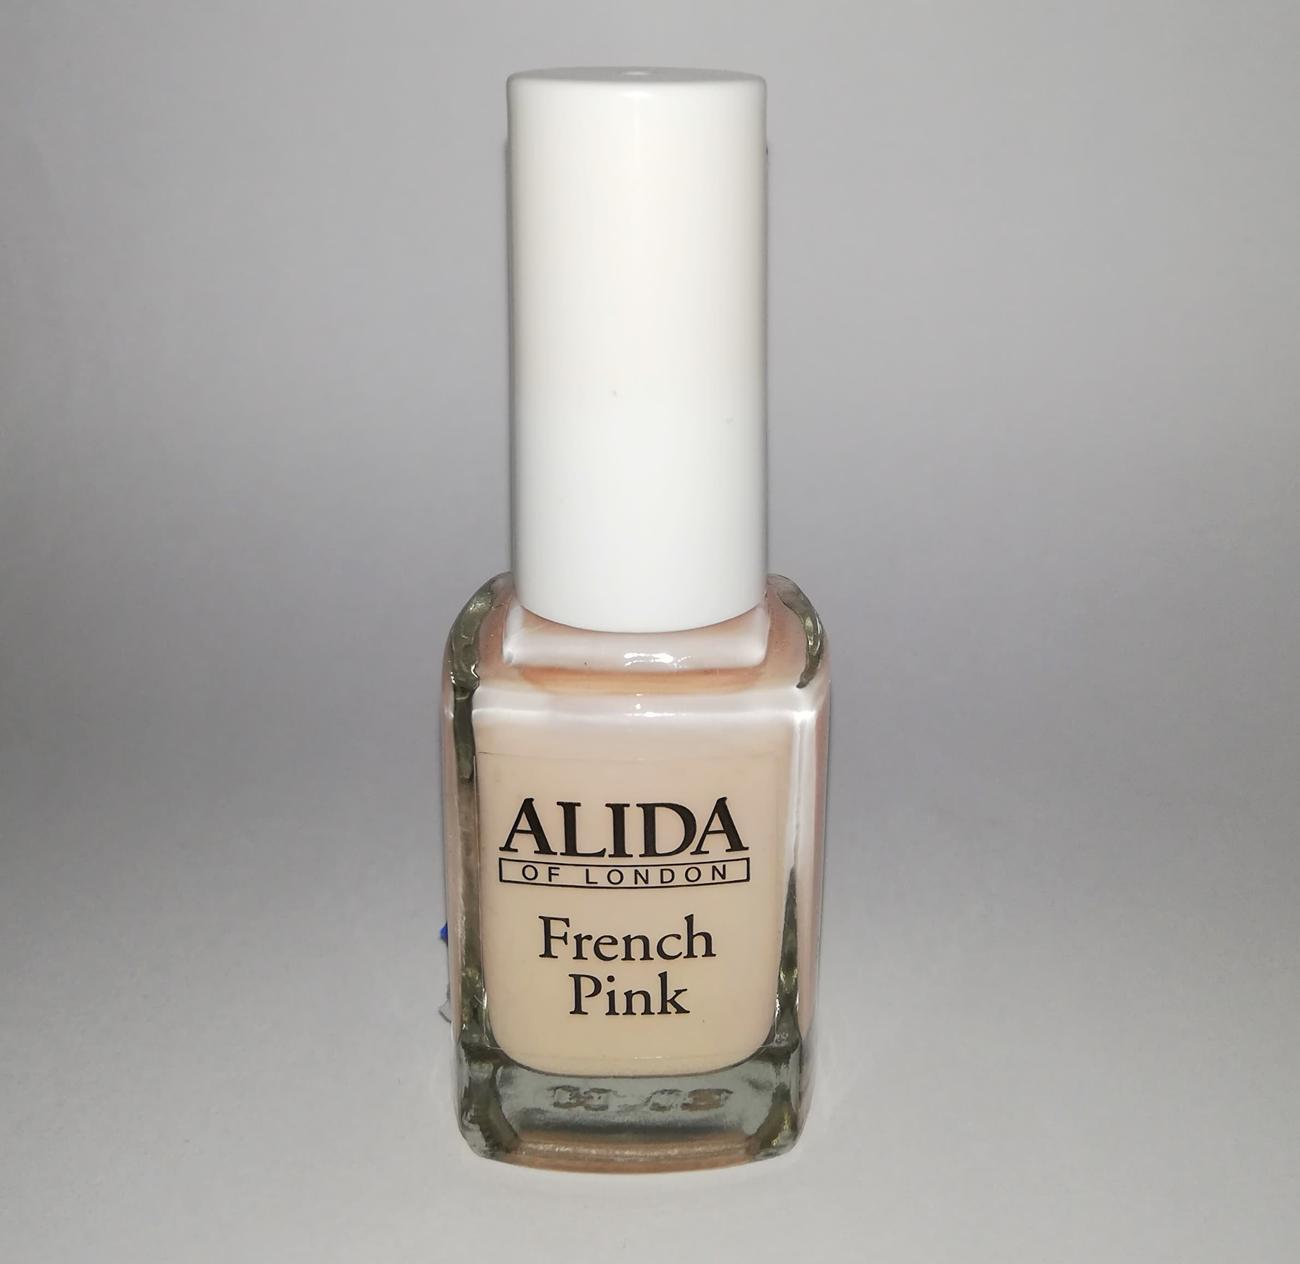 Alida of London French Pink Nail Polish -12 ml Philippines